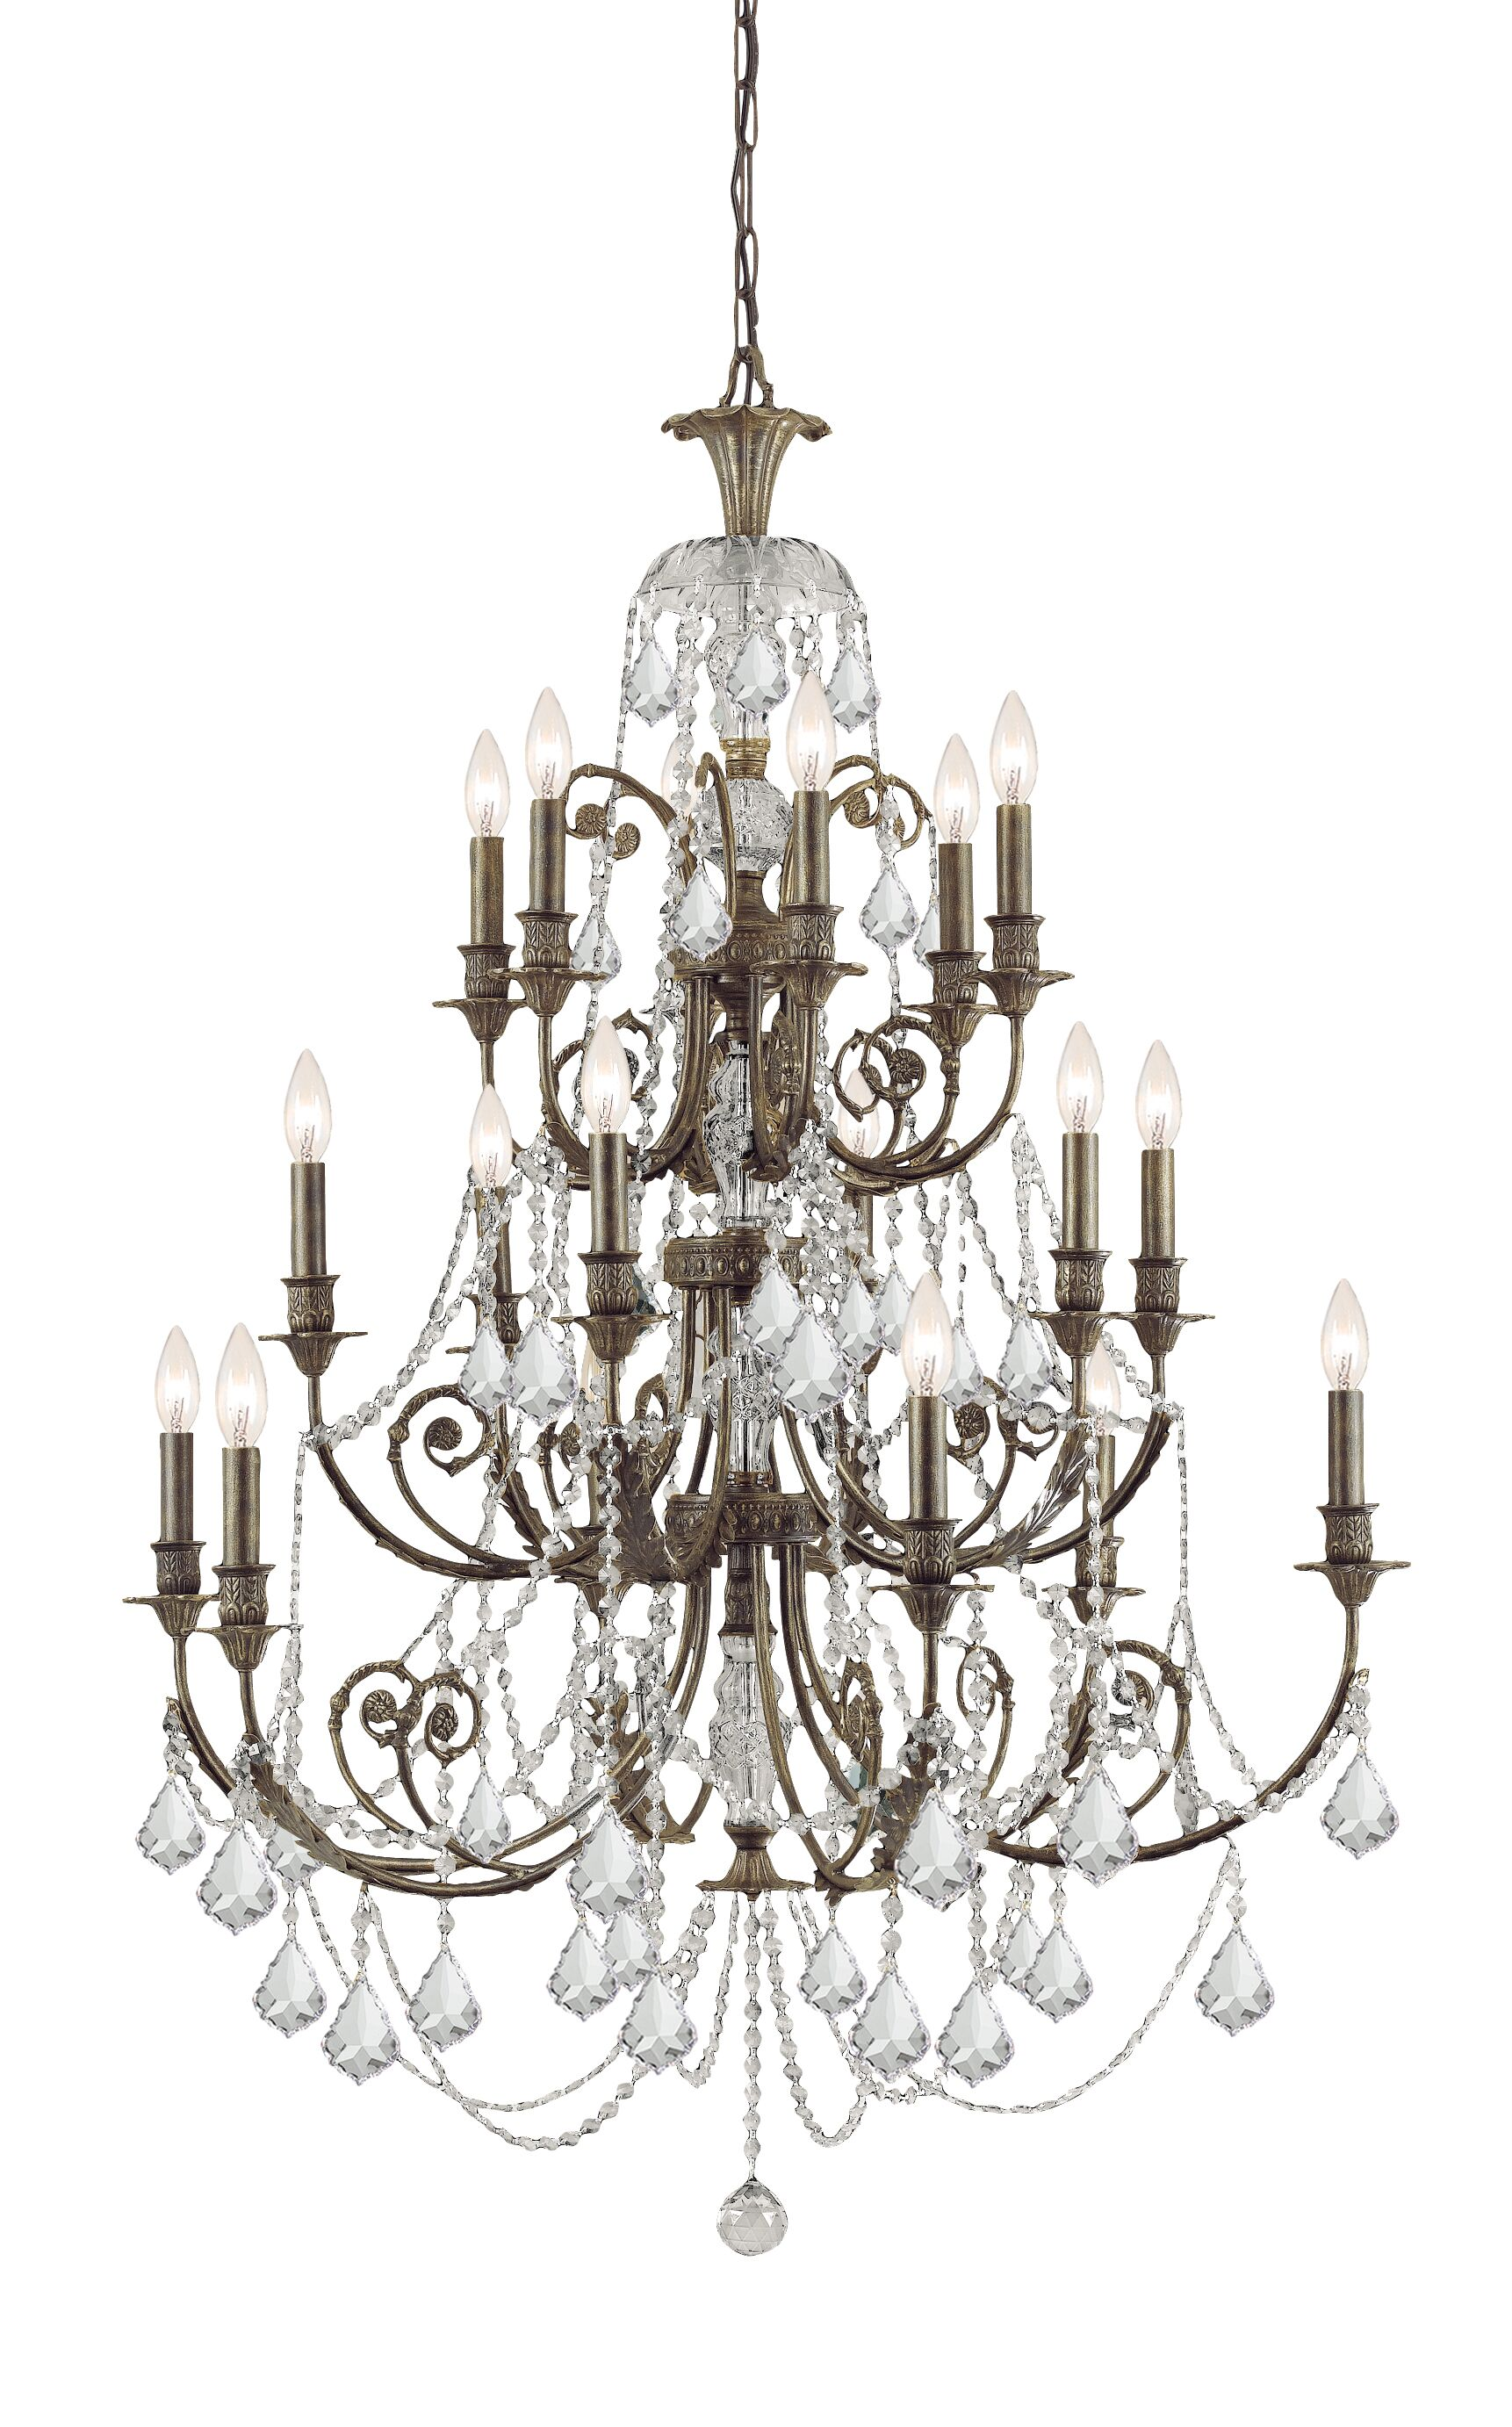 Suniga 18 Light Crystal Candle Chandelier Crystal Type: Clear Majestic Wood Polished